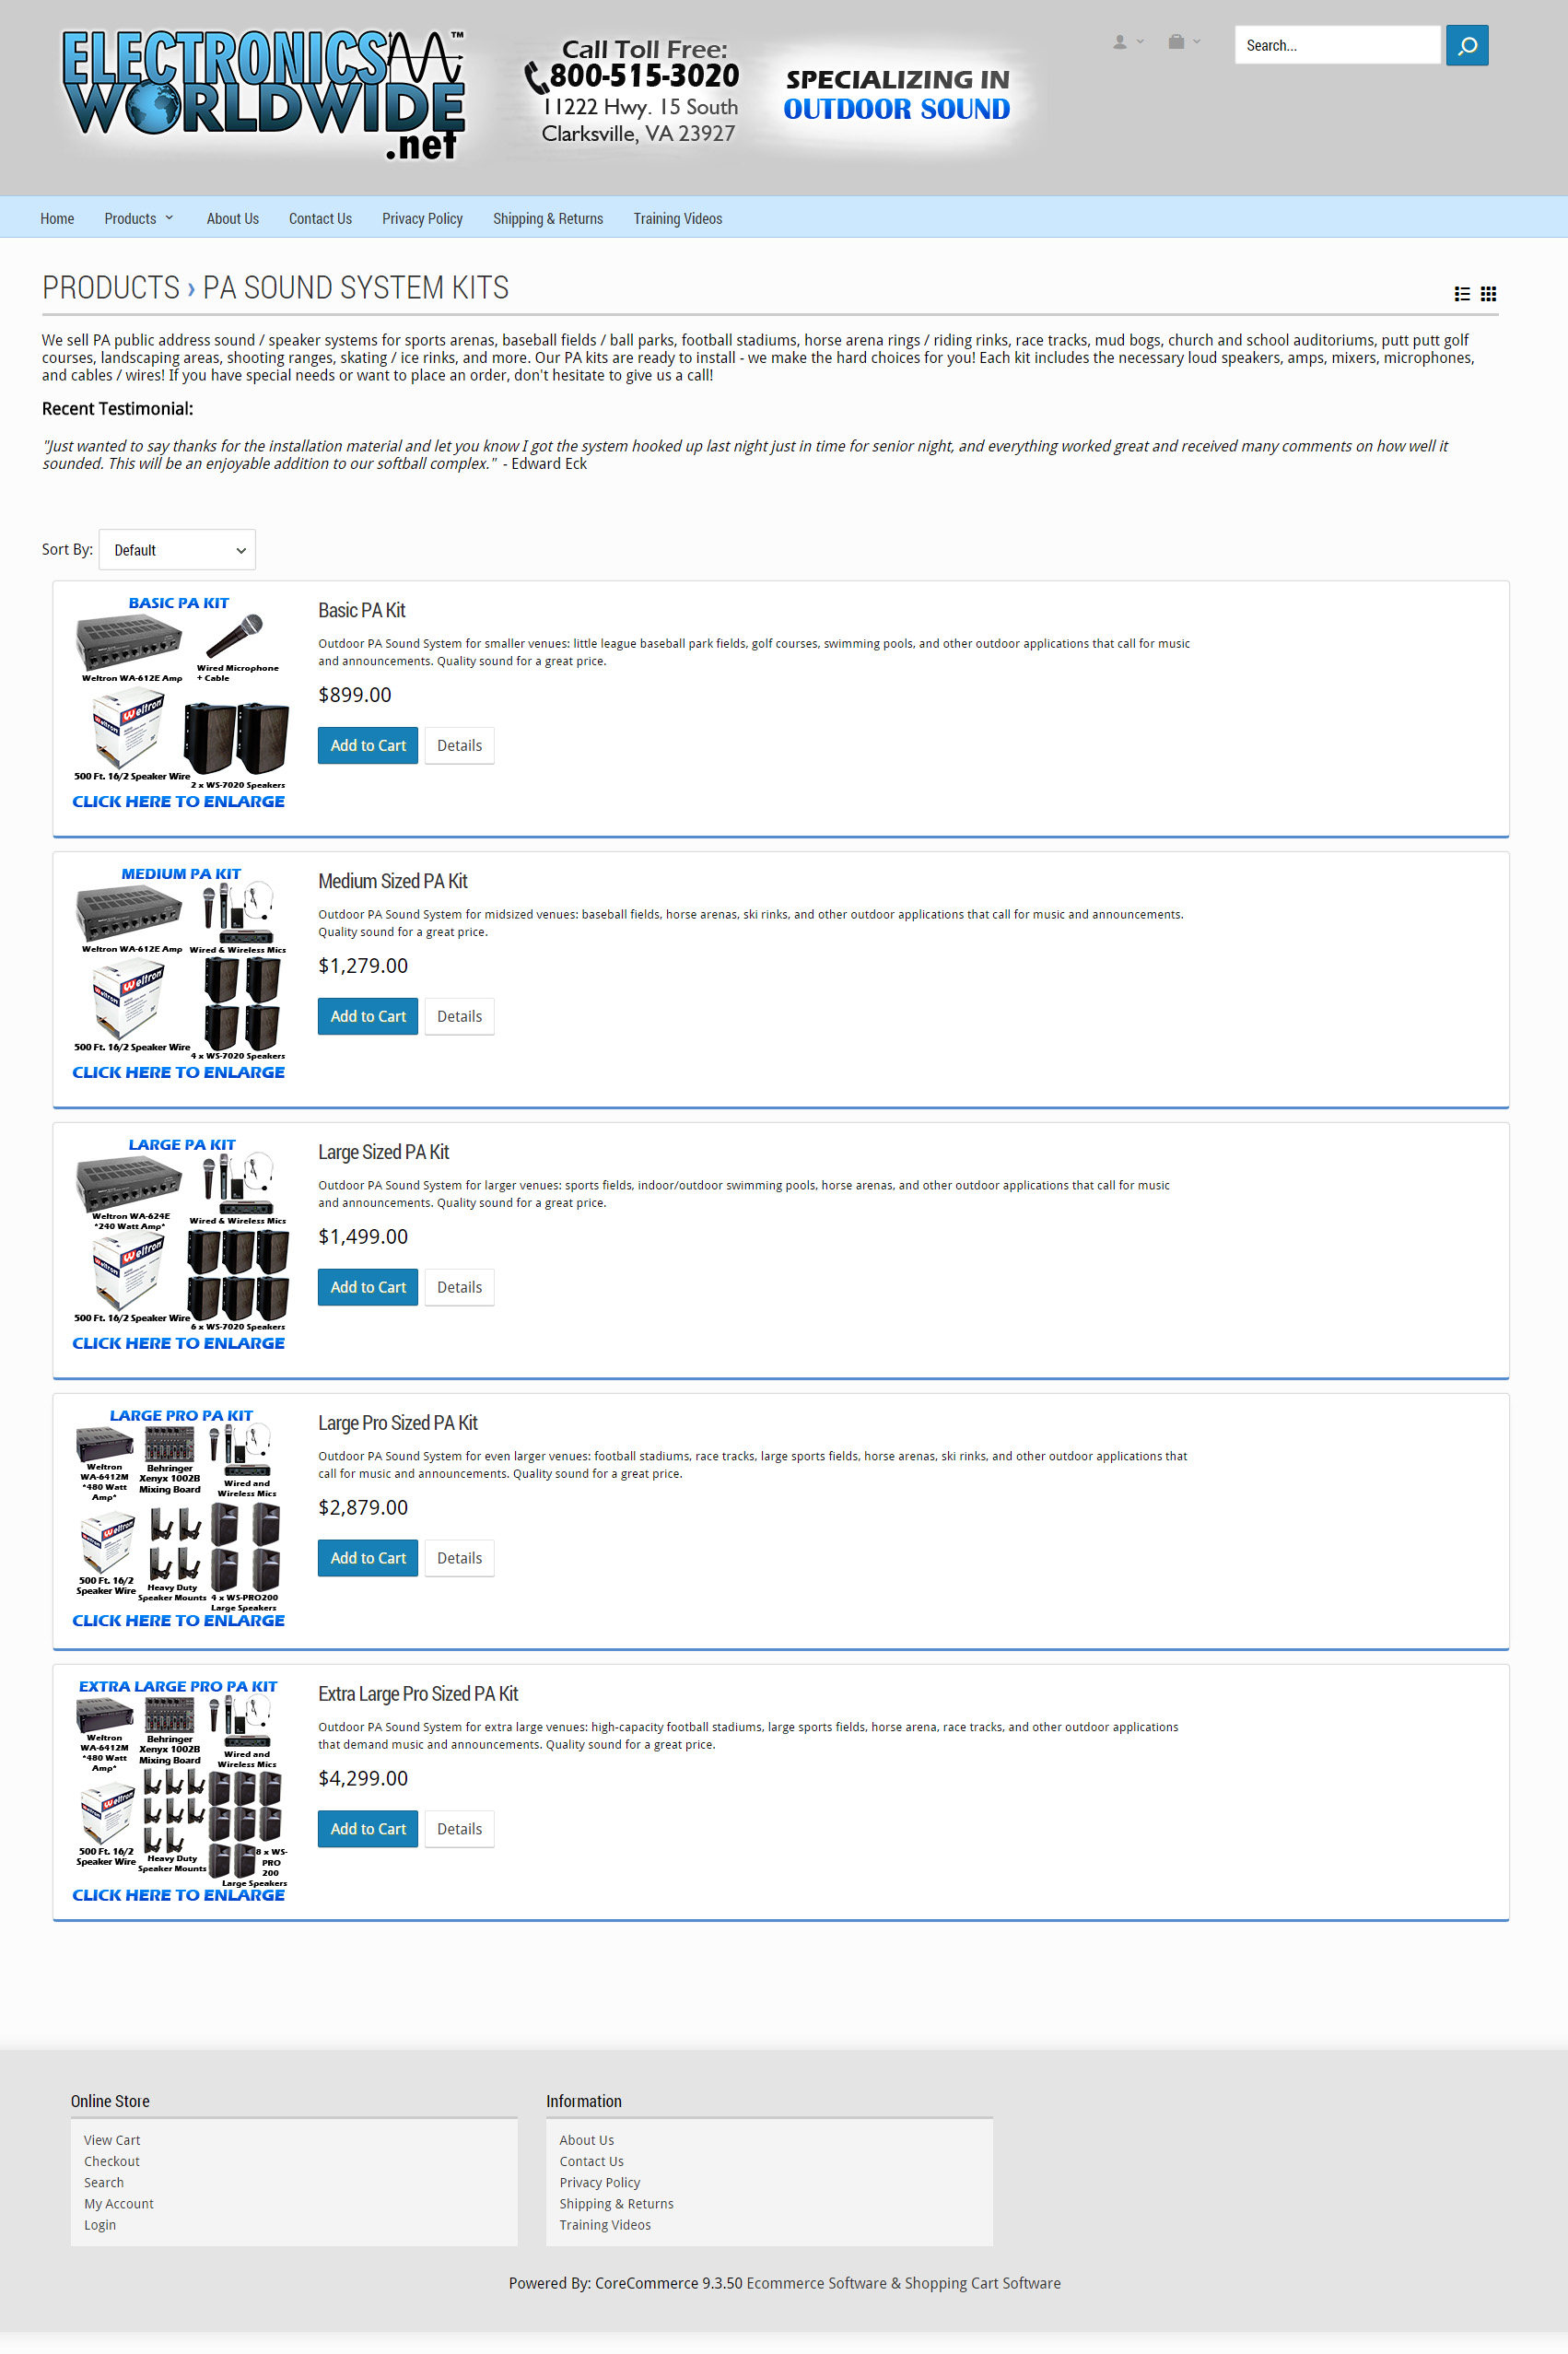 ElectronicsWorldwide.net - Outdoor PA Sound System Kits Page